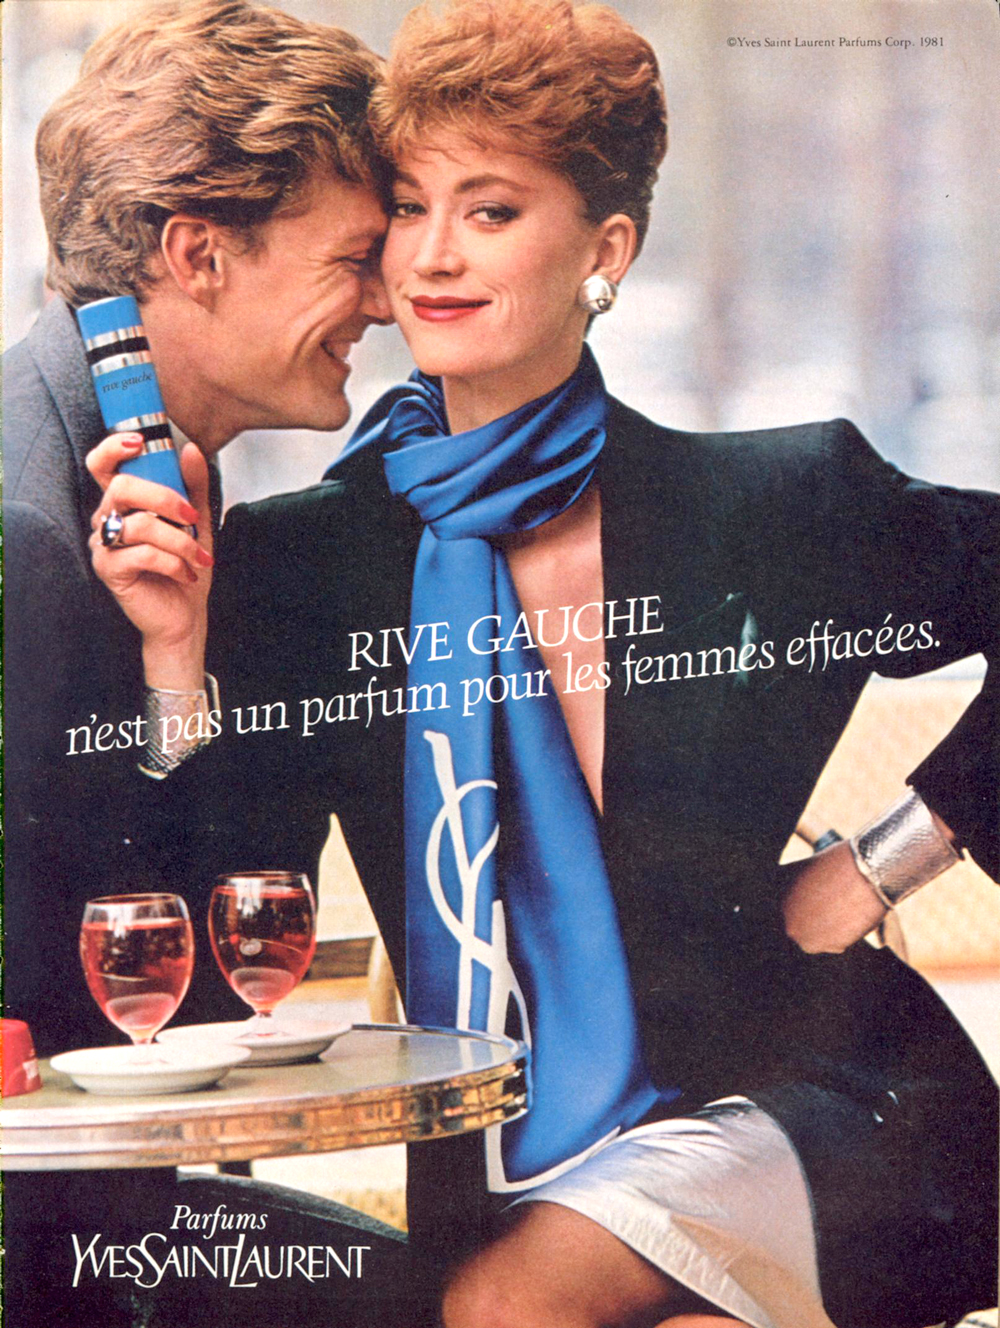 Yves Saint Laurent Rive Gauche perfume ad campaign in Vogue US December 1981 via www.fashionedbylove.co.uk